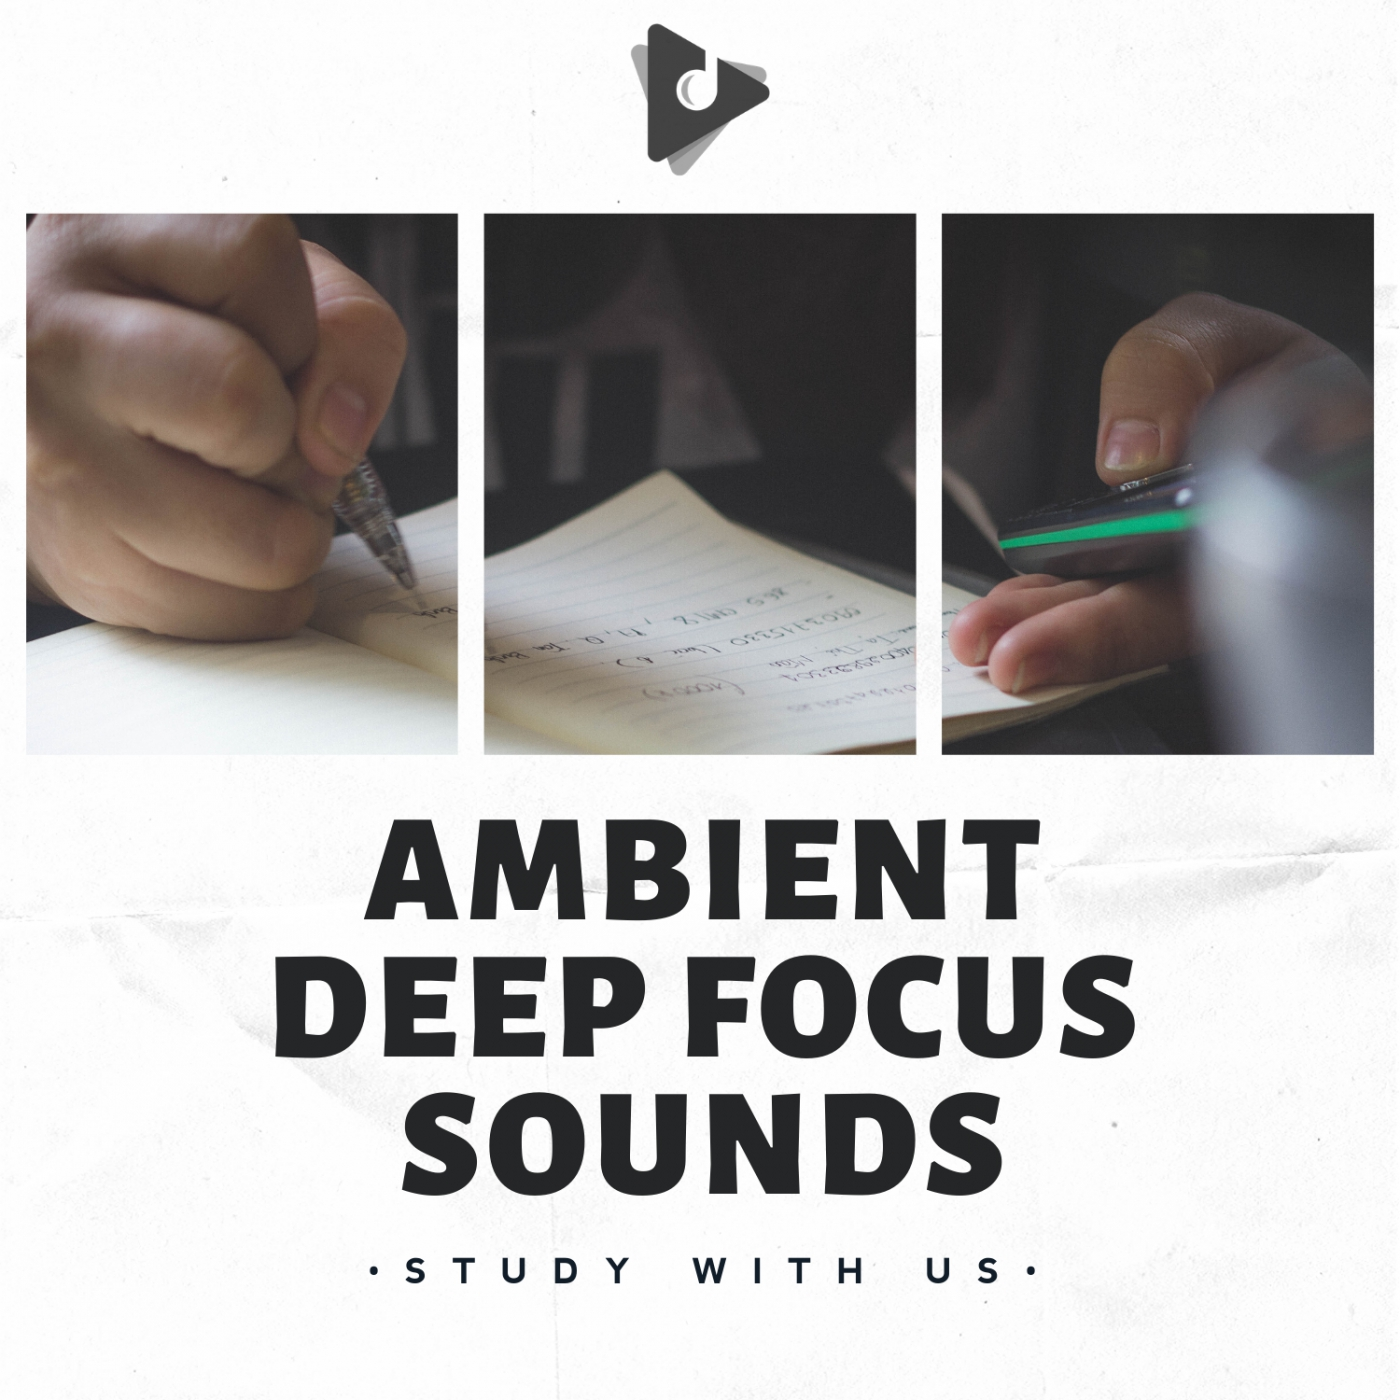 Ambient Deep Focus Sounds